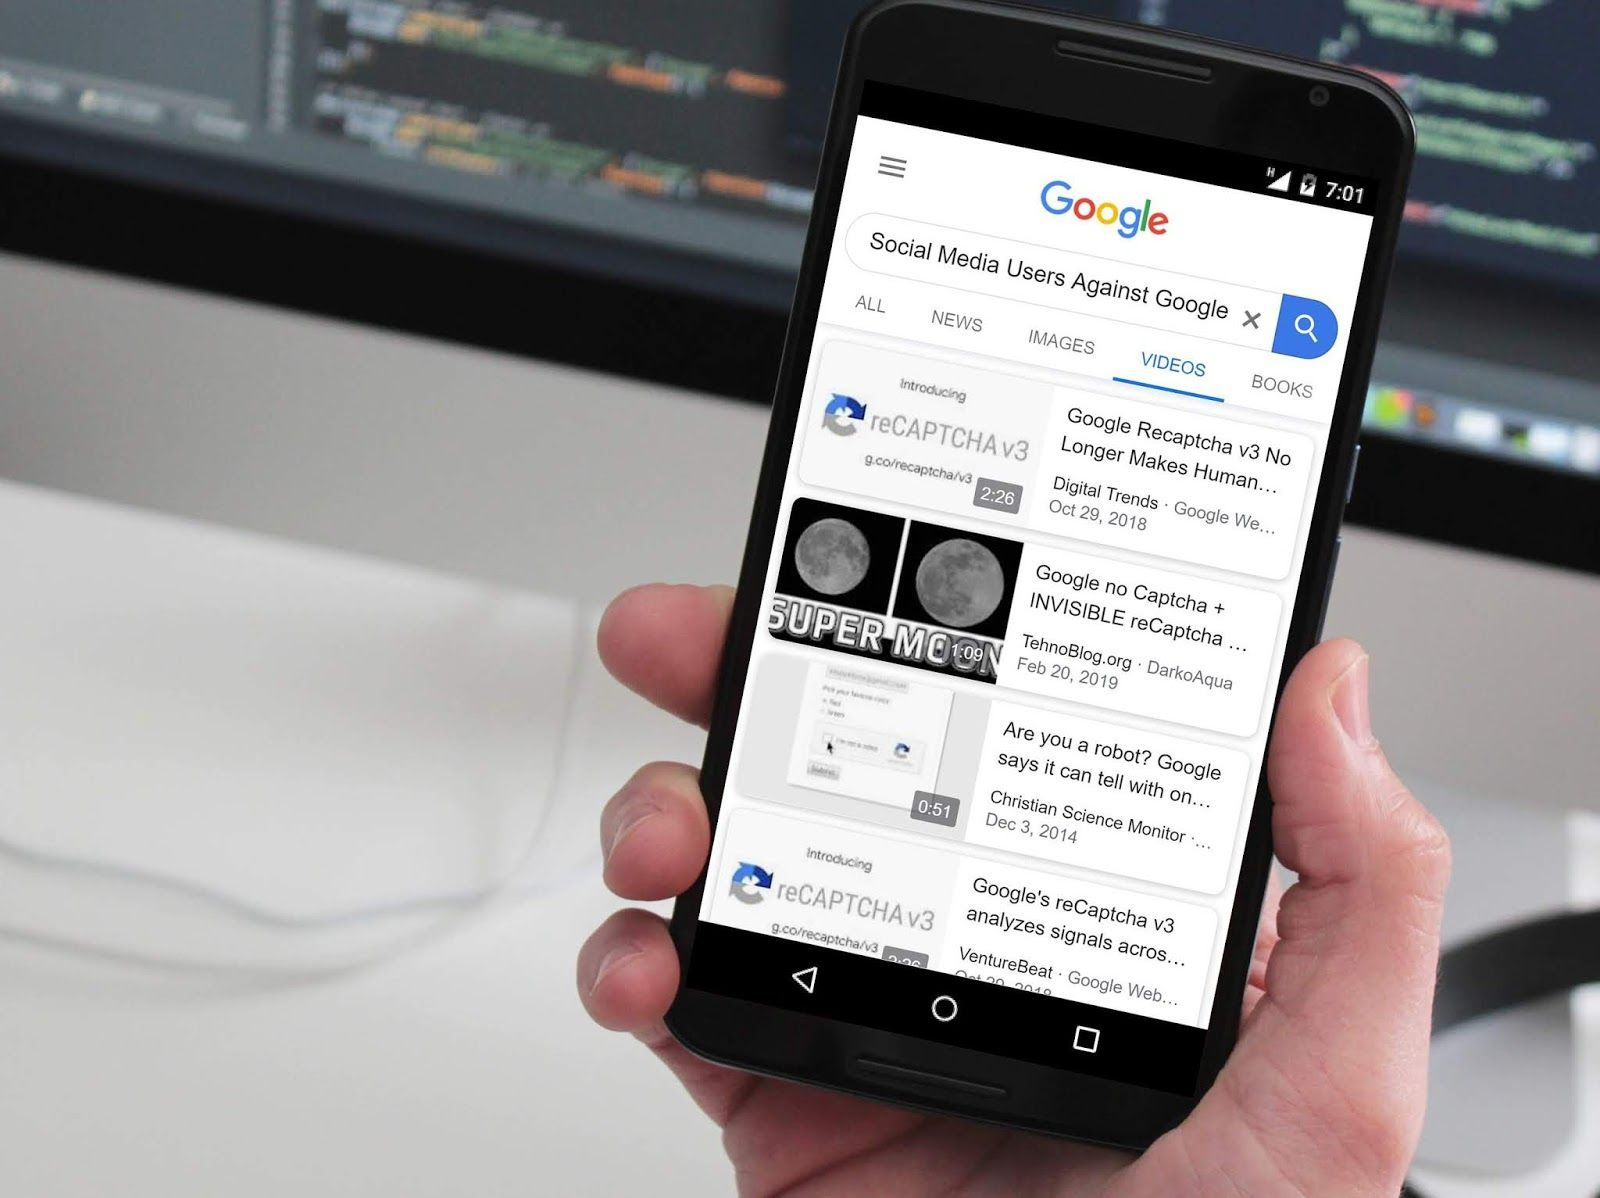 Google Search Results Lacking Youtube Videos Is Irritating Some